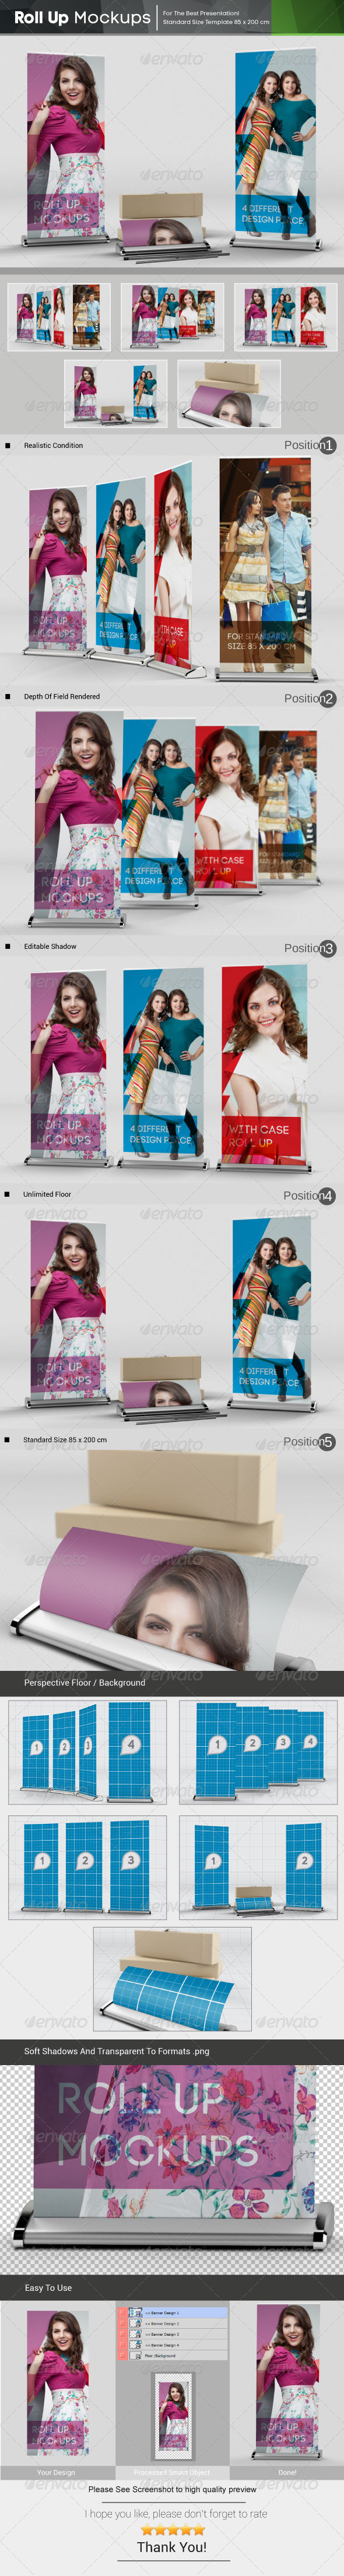 GraphicRiver Roll Up Mockups 6081352